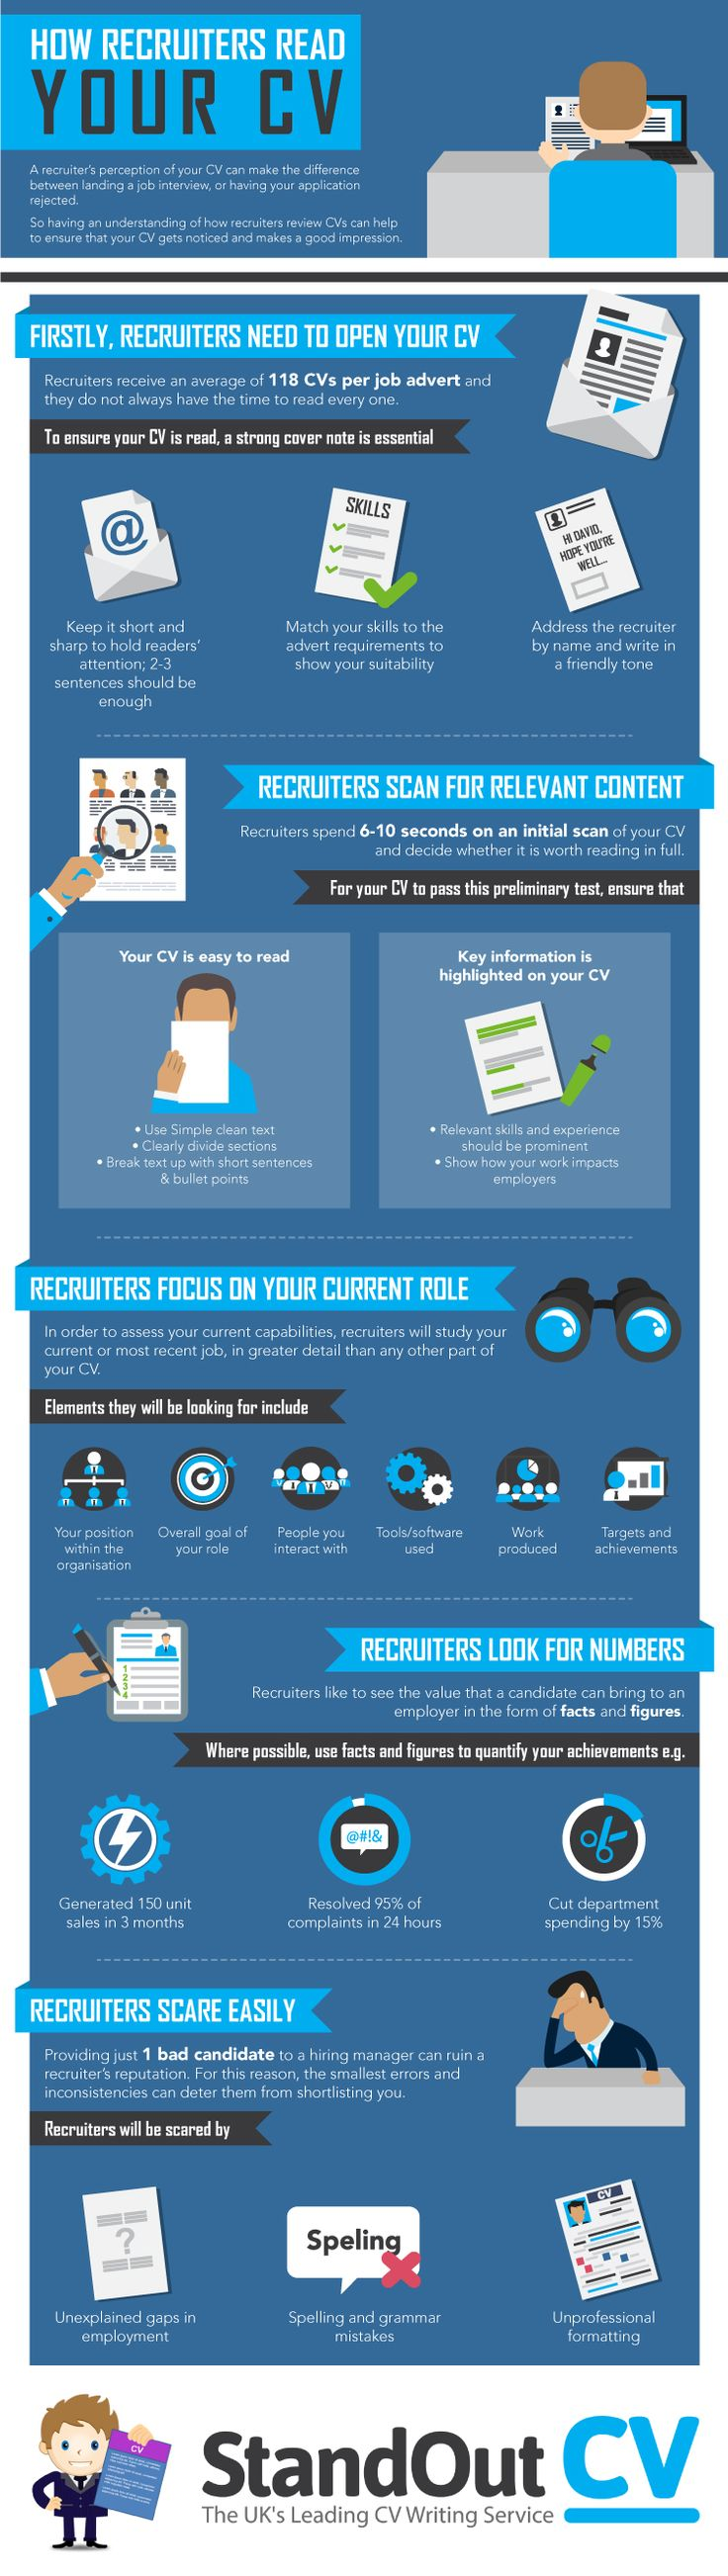 How Recruiters Read Your CV Infographic - http://elearninginfographics.com/recruiters-read-cv-infographic/